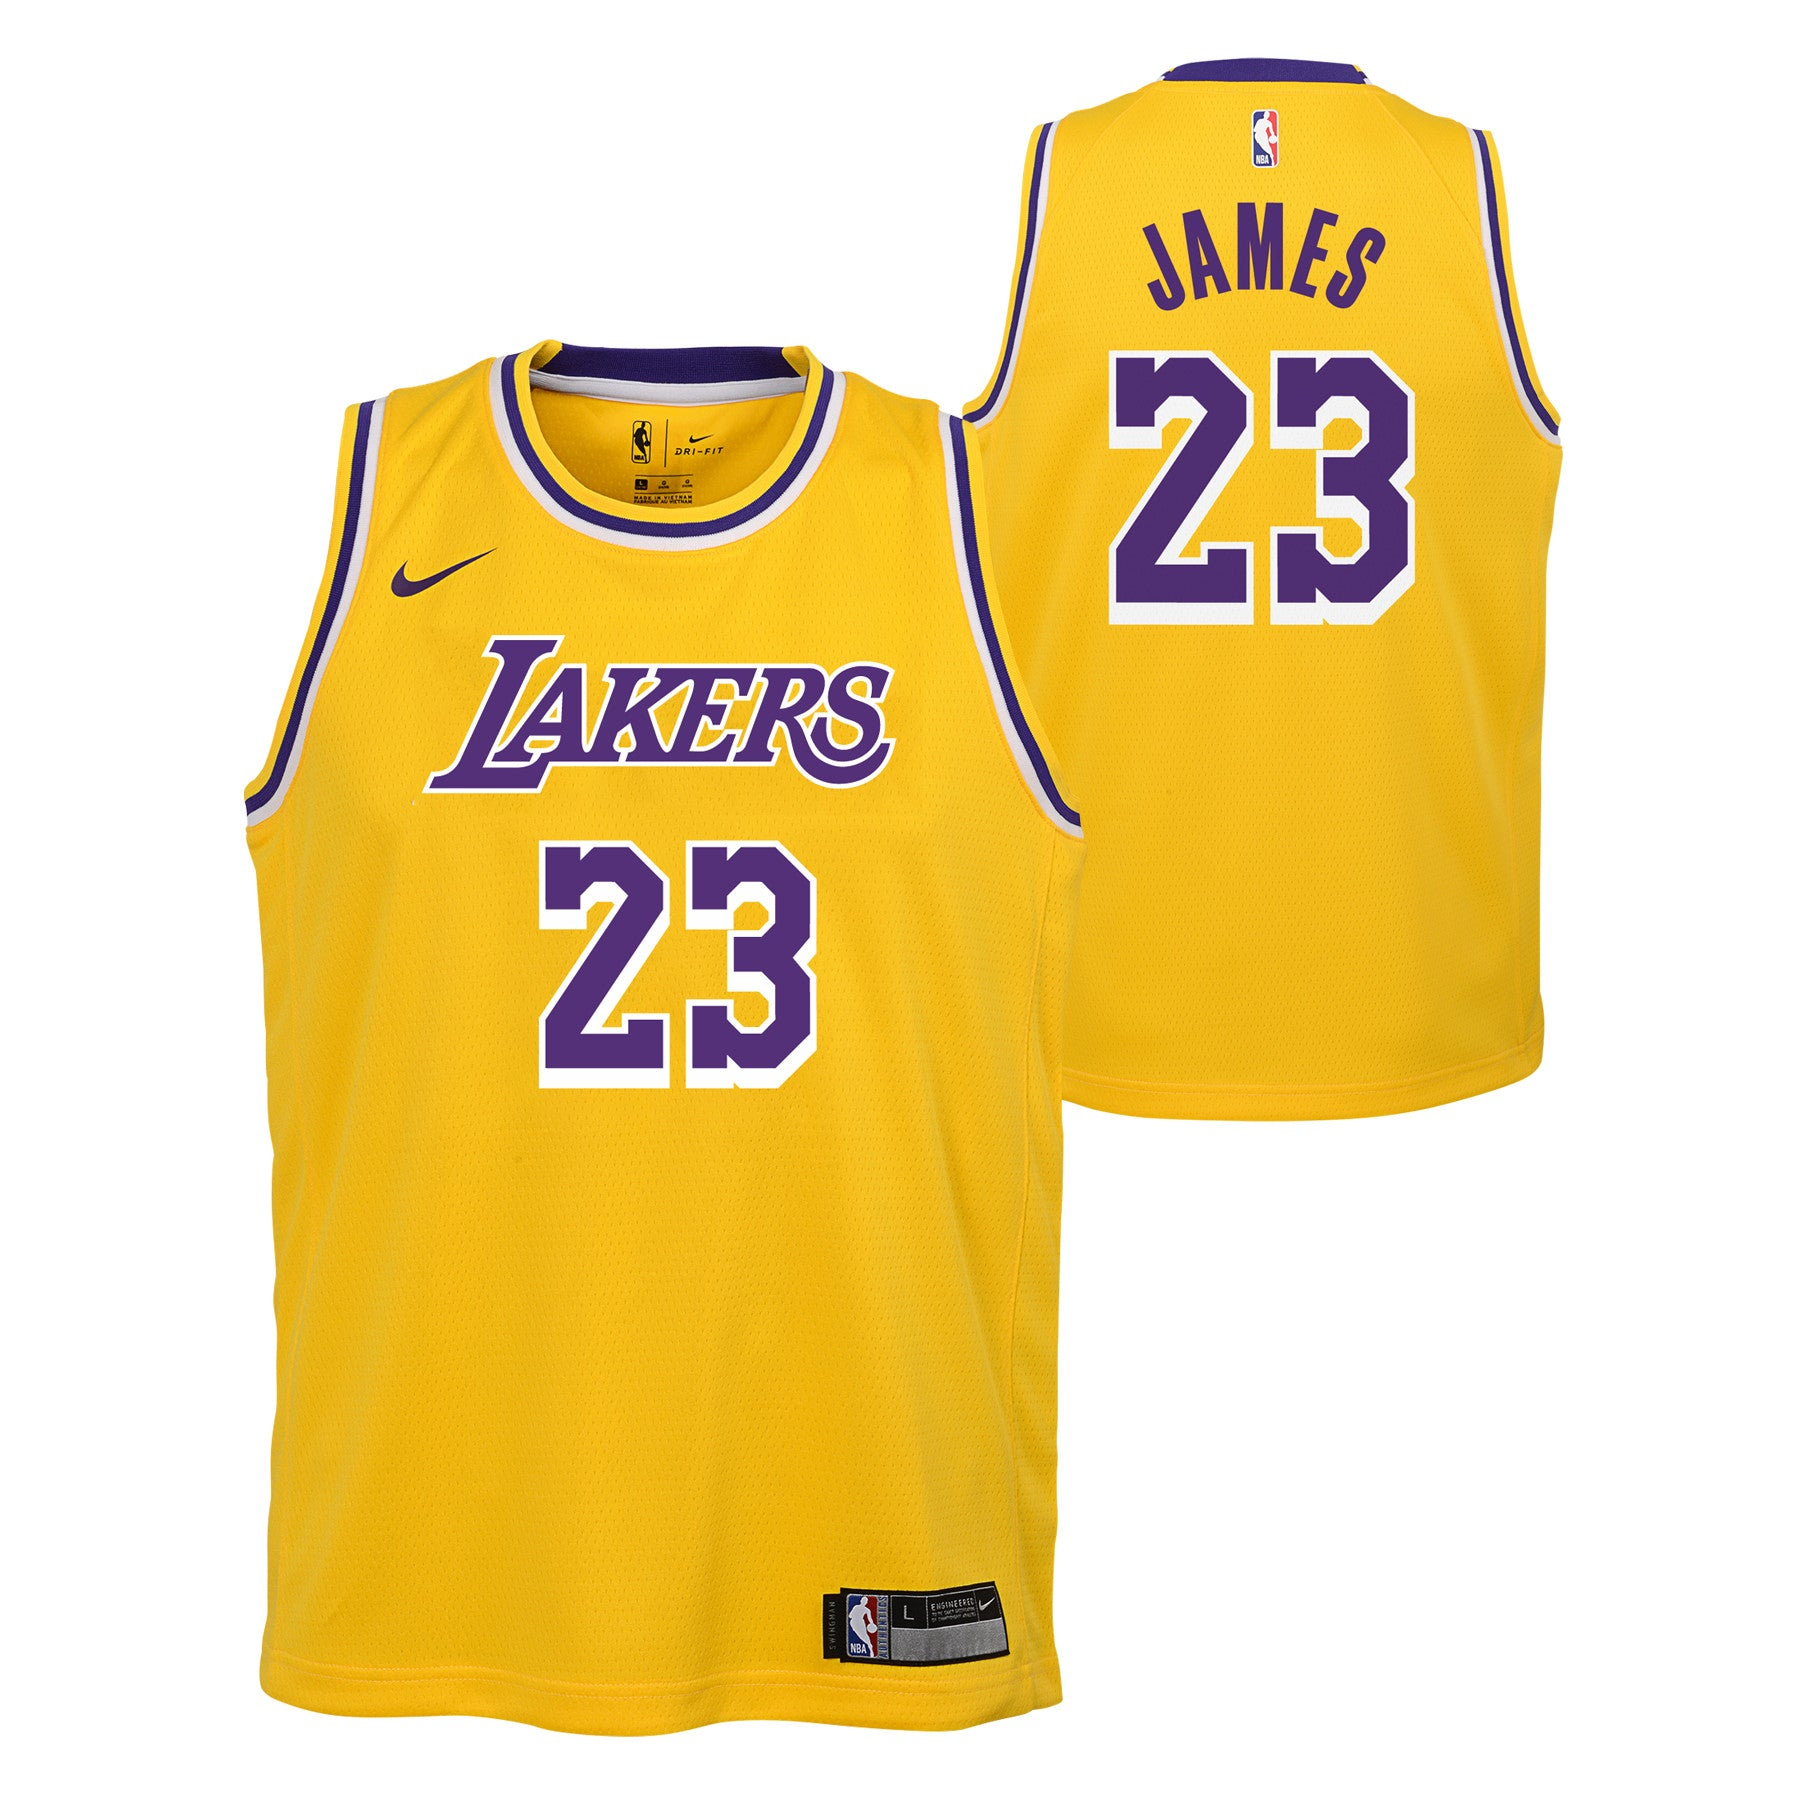 052b1c73c LEBRON JAMES LOS ANGELES LAKERS NBA NIKE ICON YOUTH SWINGMAN JERSEY –  Basketball Jersey World